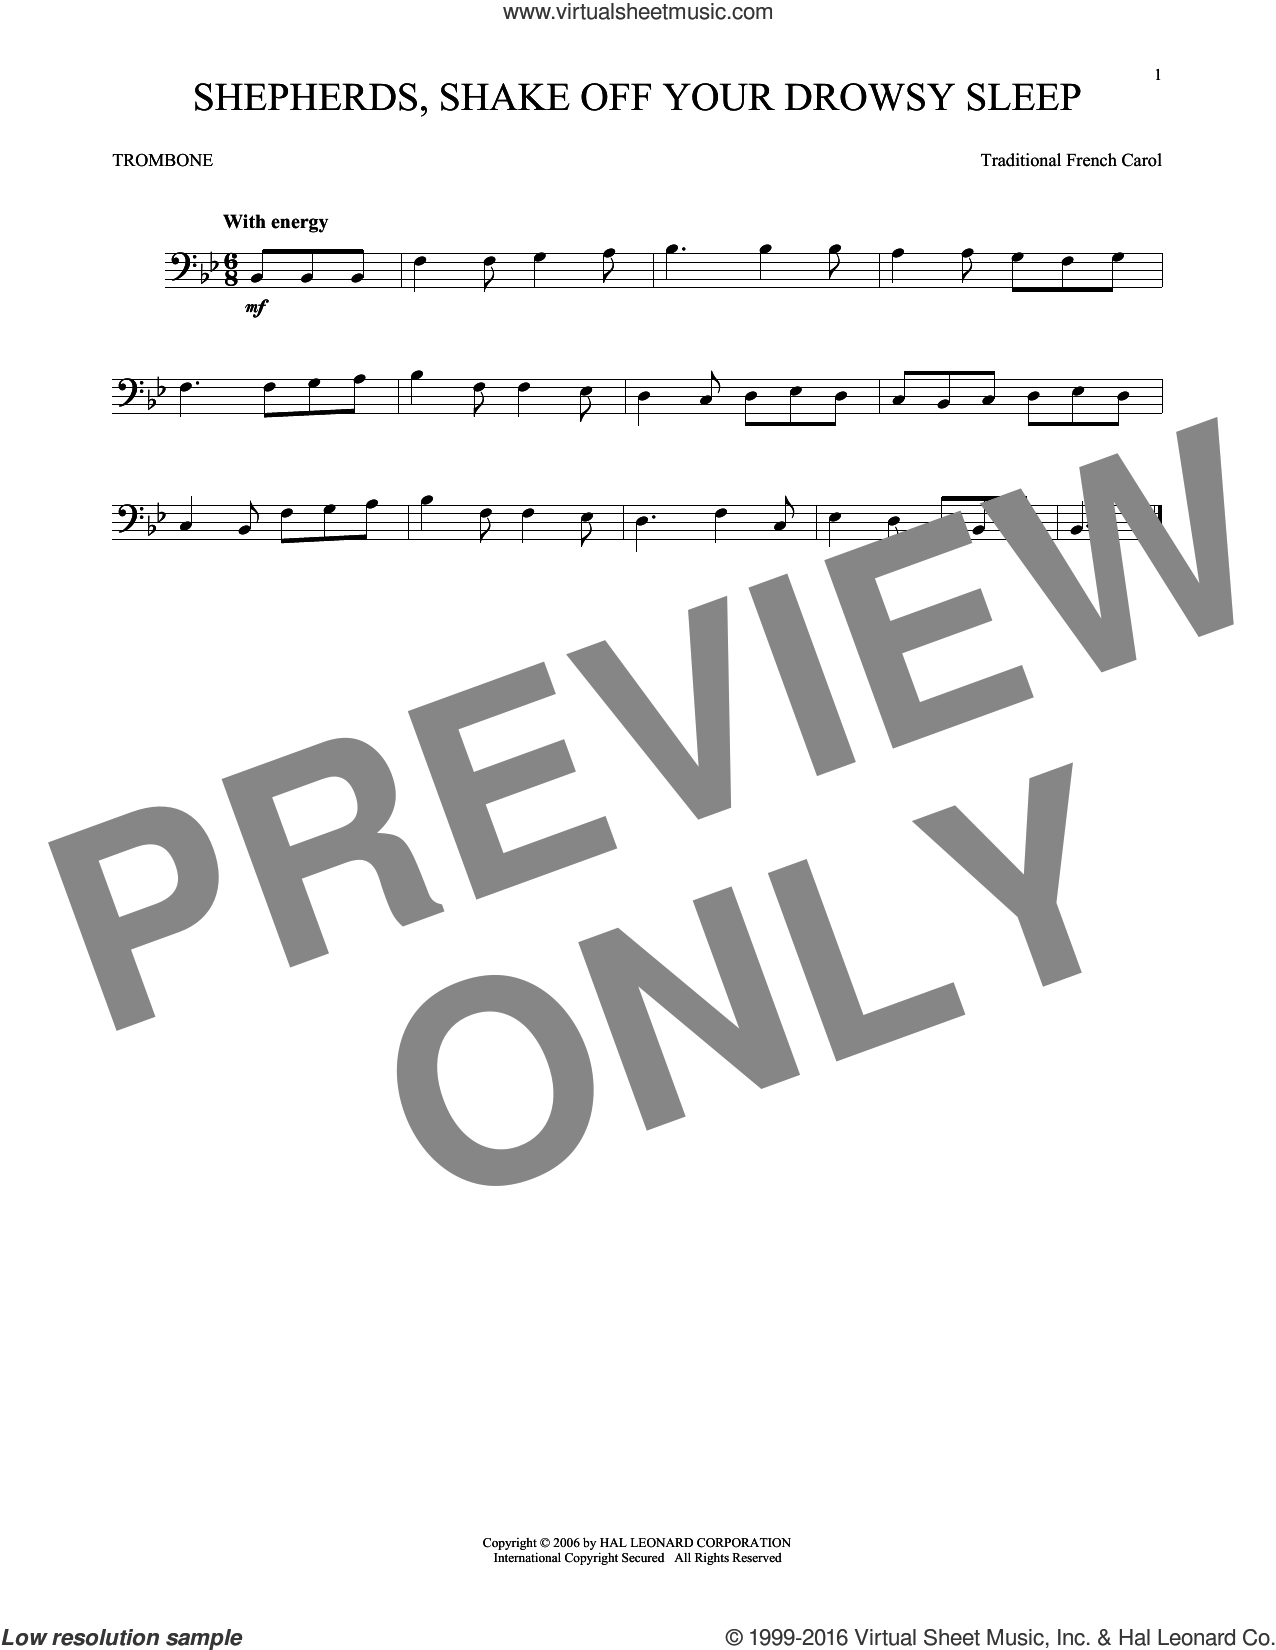 Shepherds, Shake Off Your Drowsy Sleep sheet music for trombone solo, intermediate skill level